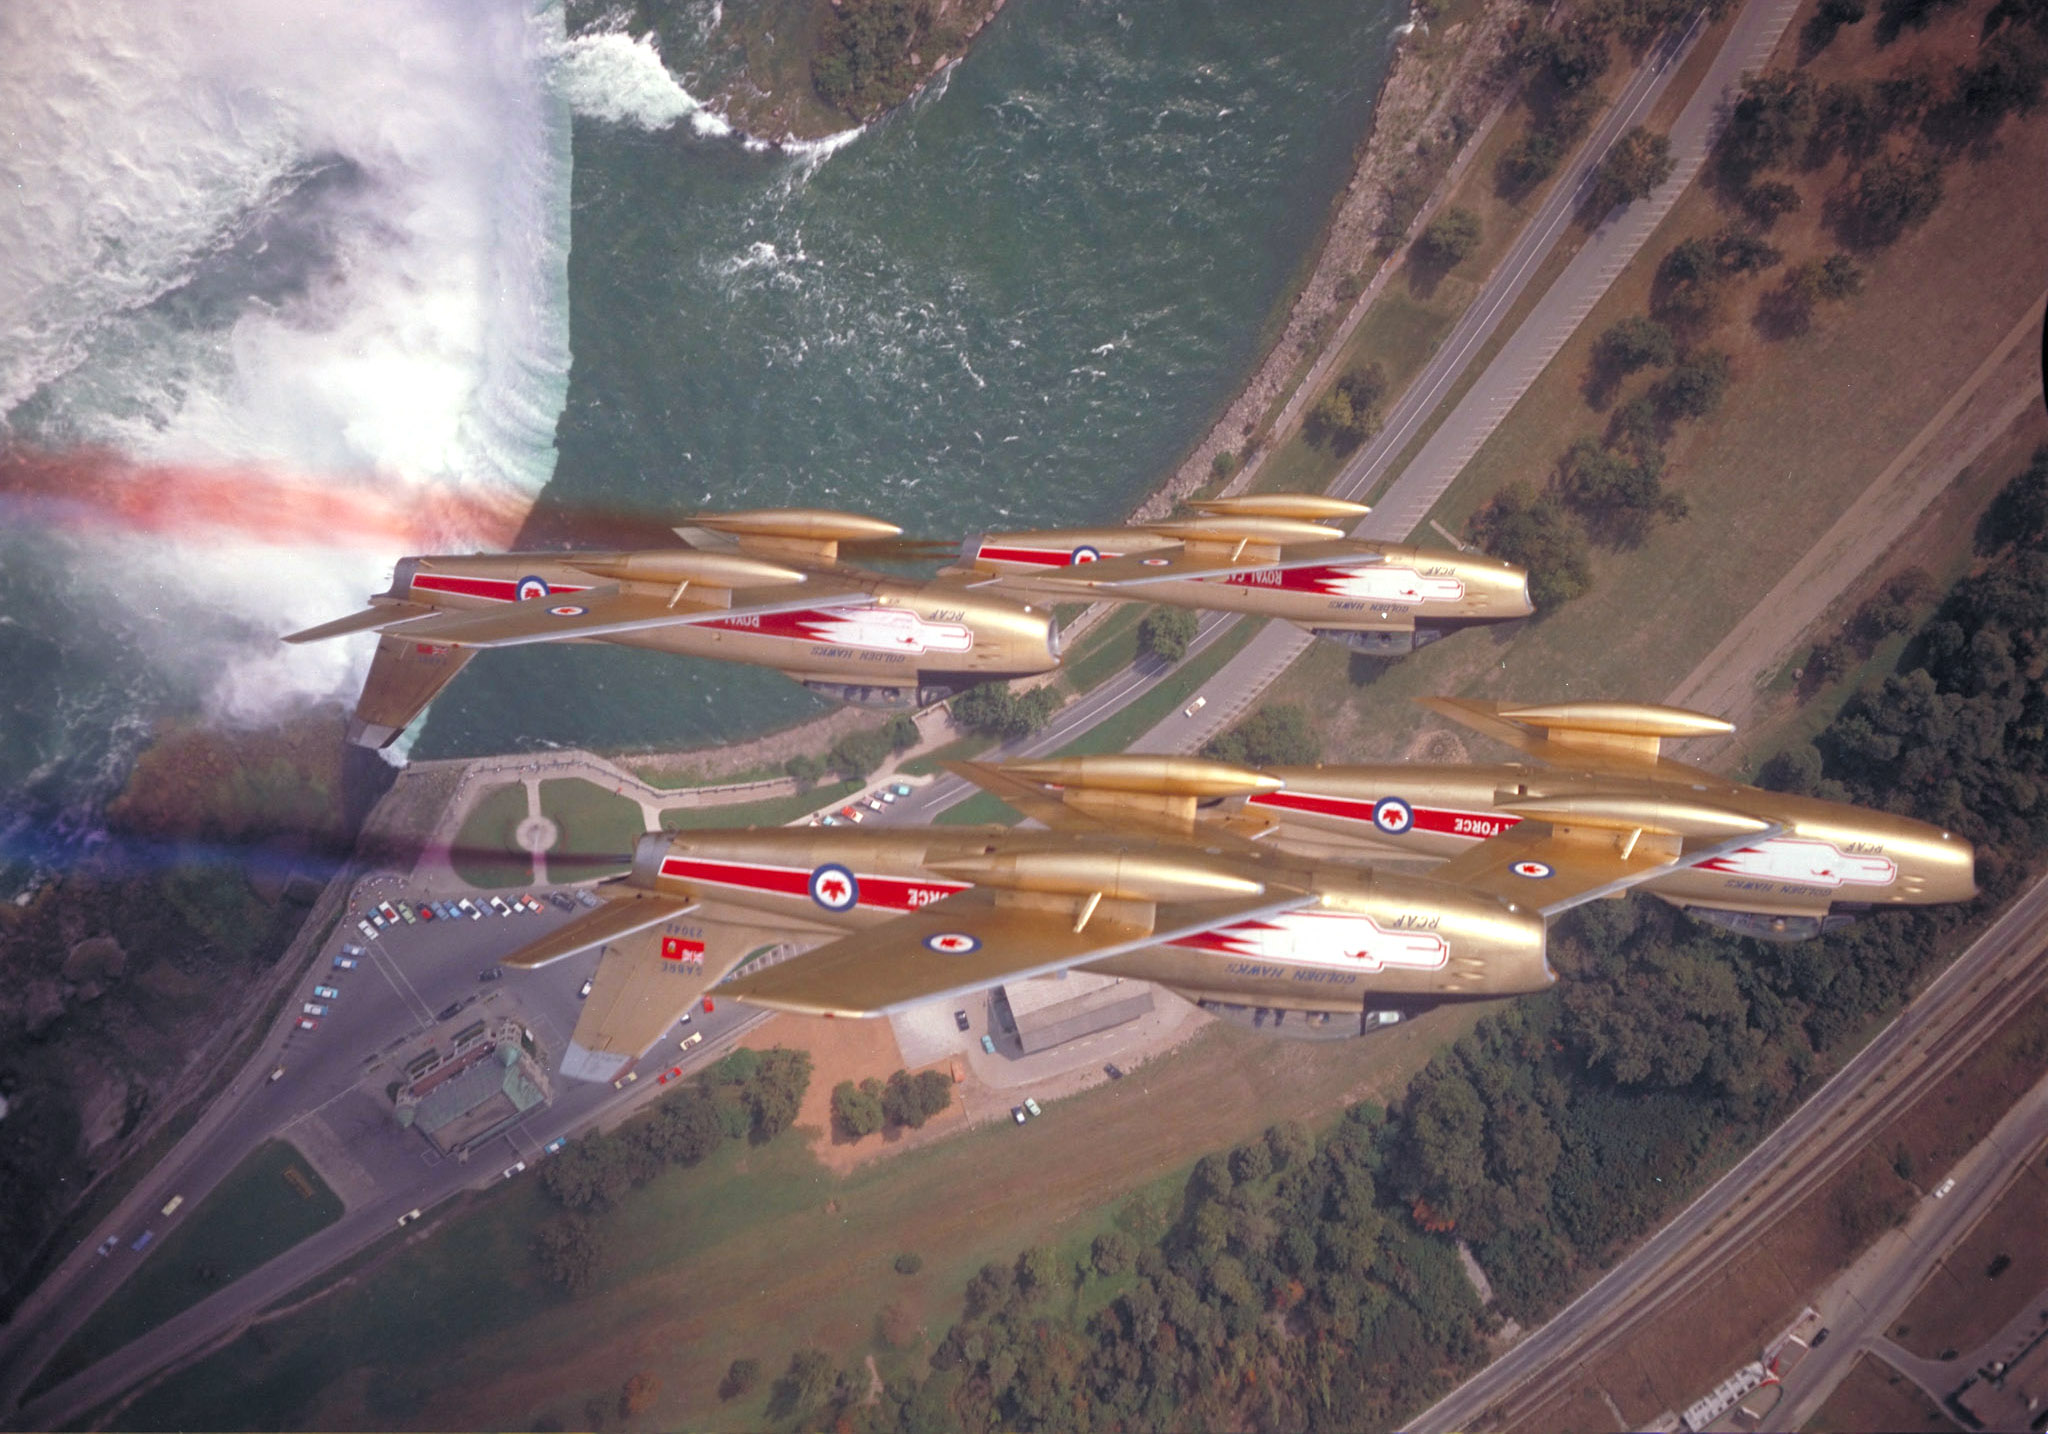 Four gold coloured aircraft in flight.